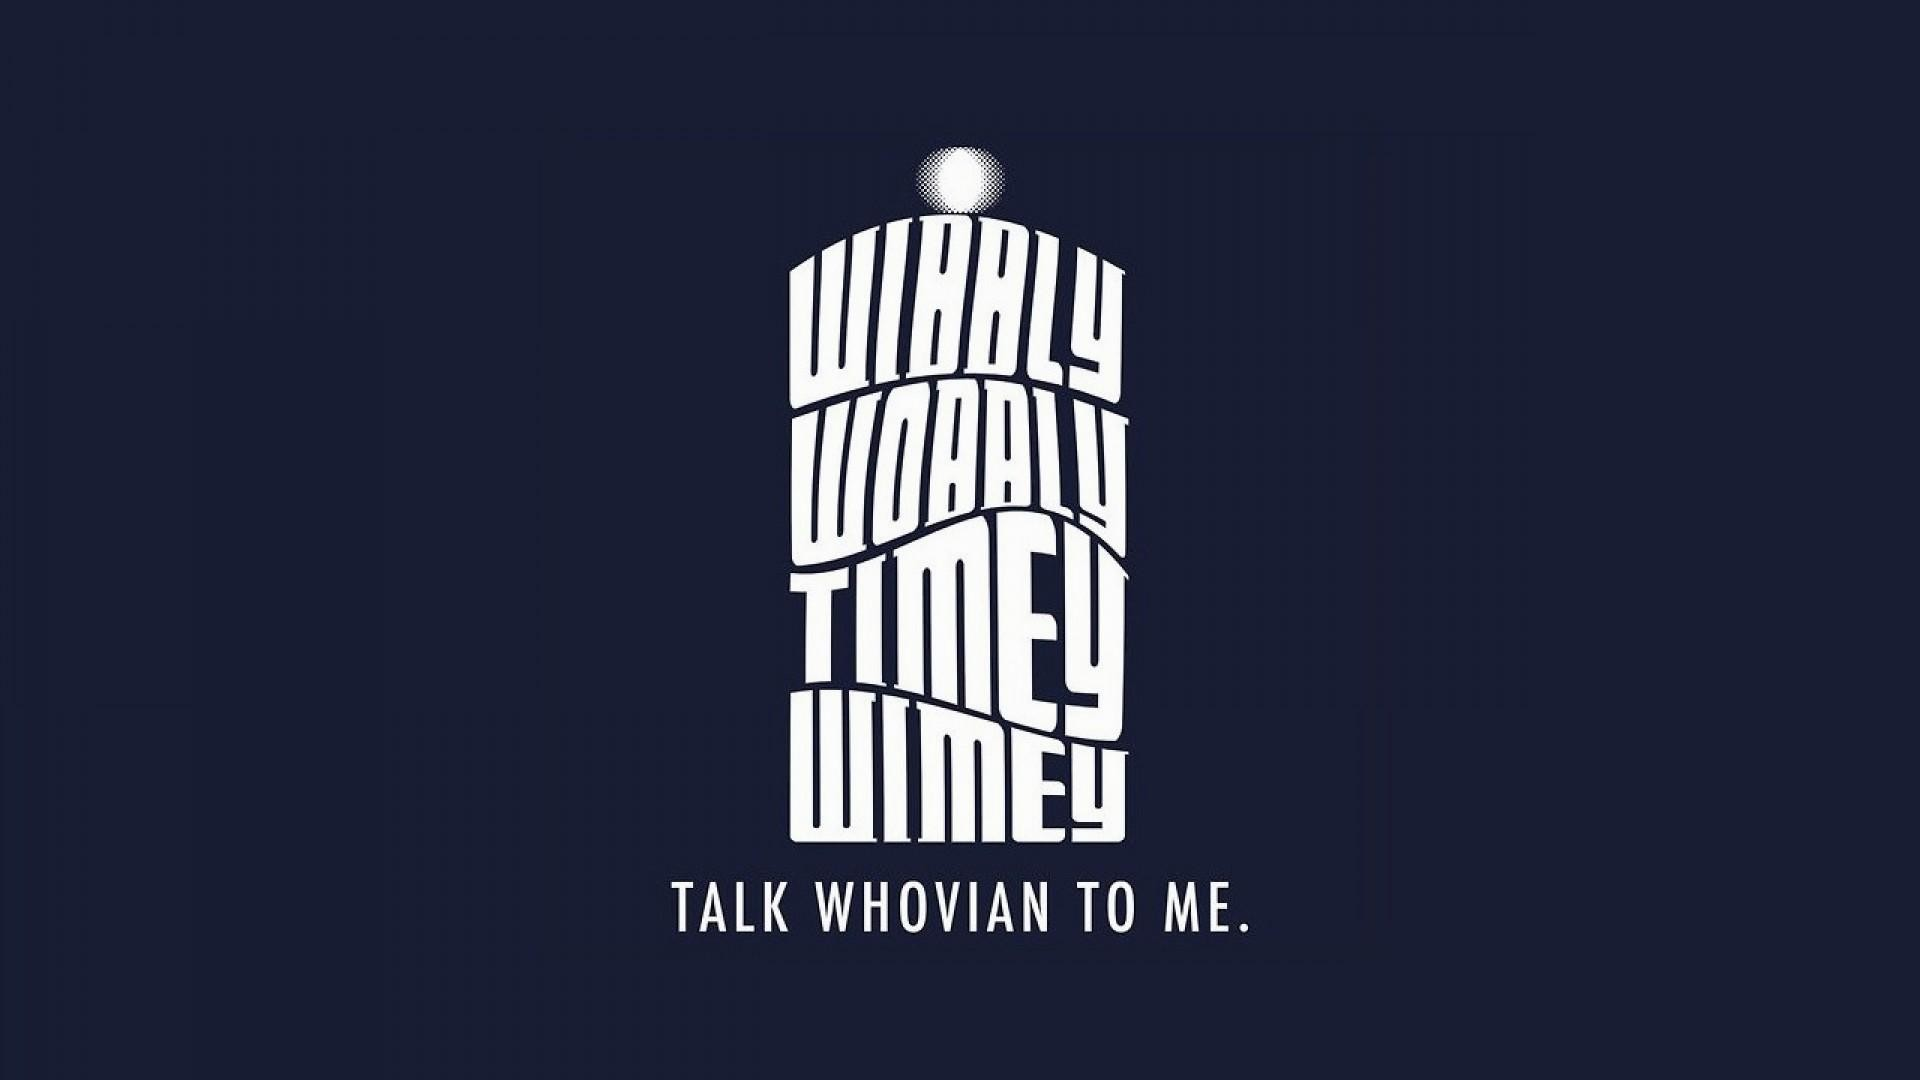 Doctor-Who-Desktop-Backgrounds-1920x1080PX-~-Dr-Who-wallpaper-wp6404413